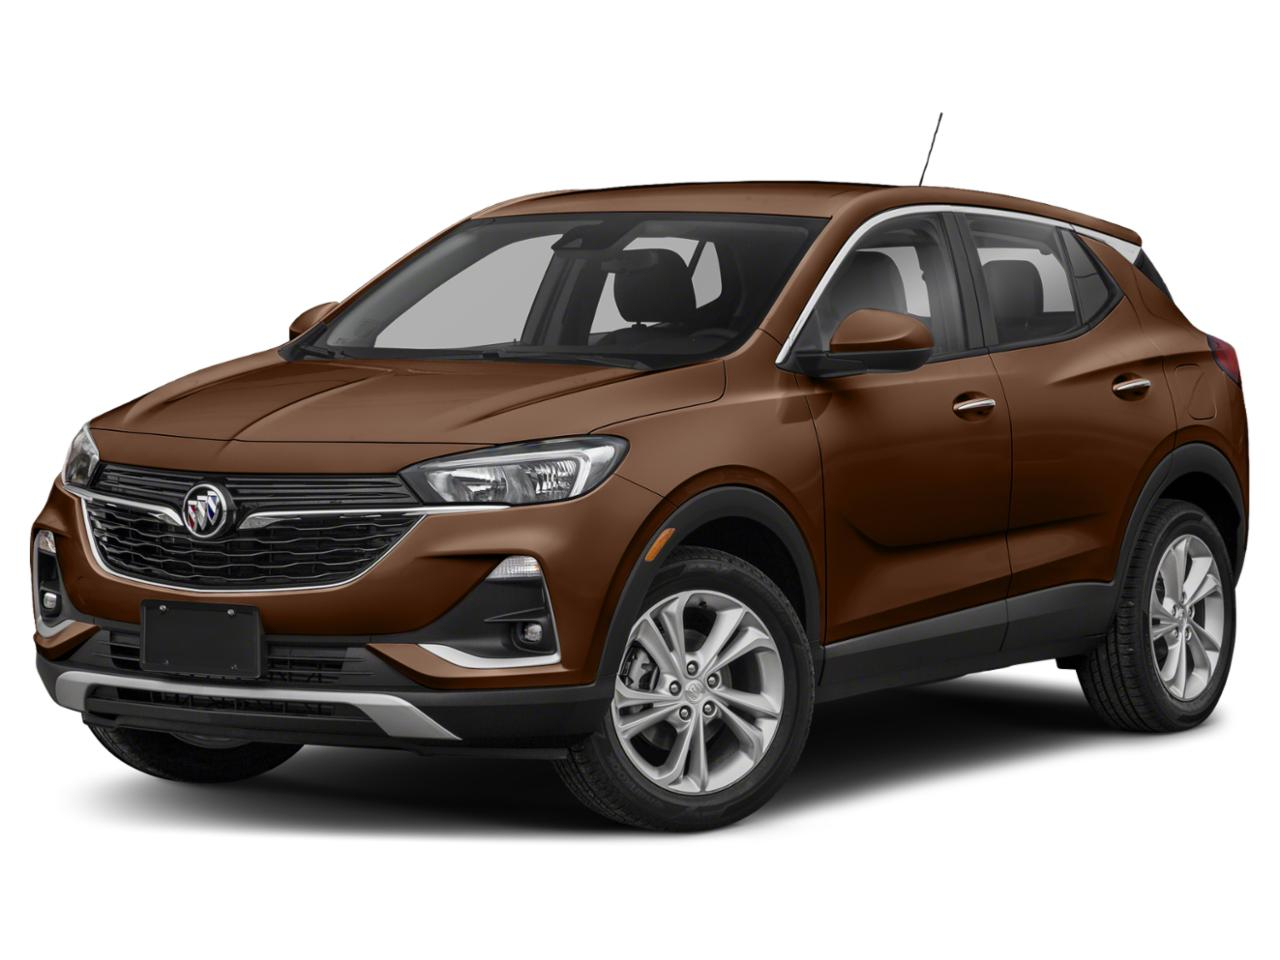 New 2020 Buick Encore Gx For Sale At Griffin Buick Gmc 2022 Buick Encore Gx Specs, Accessories, Awd